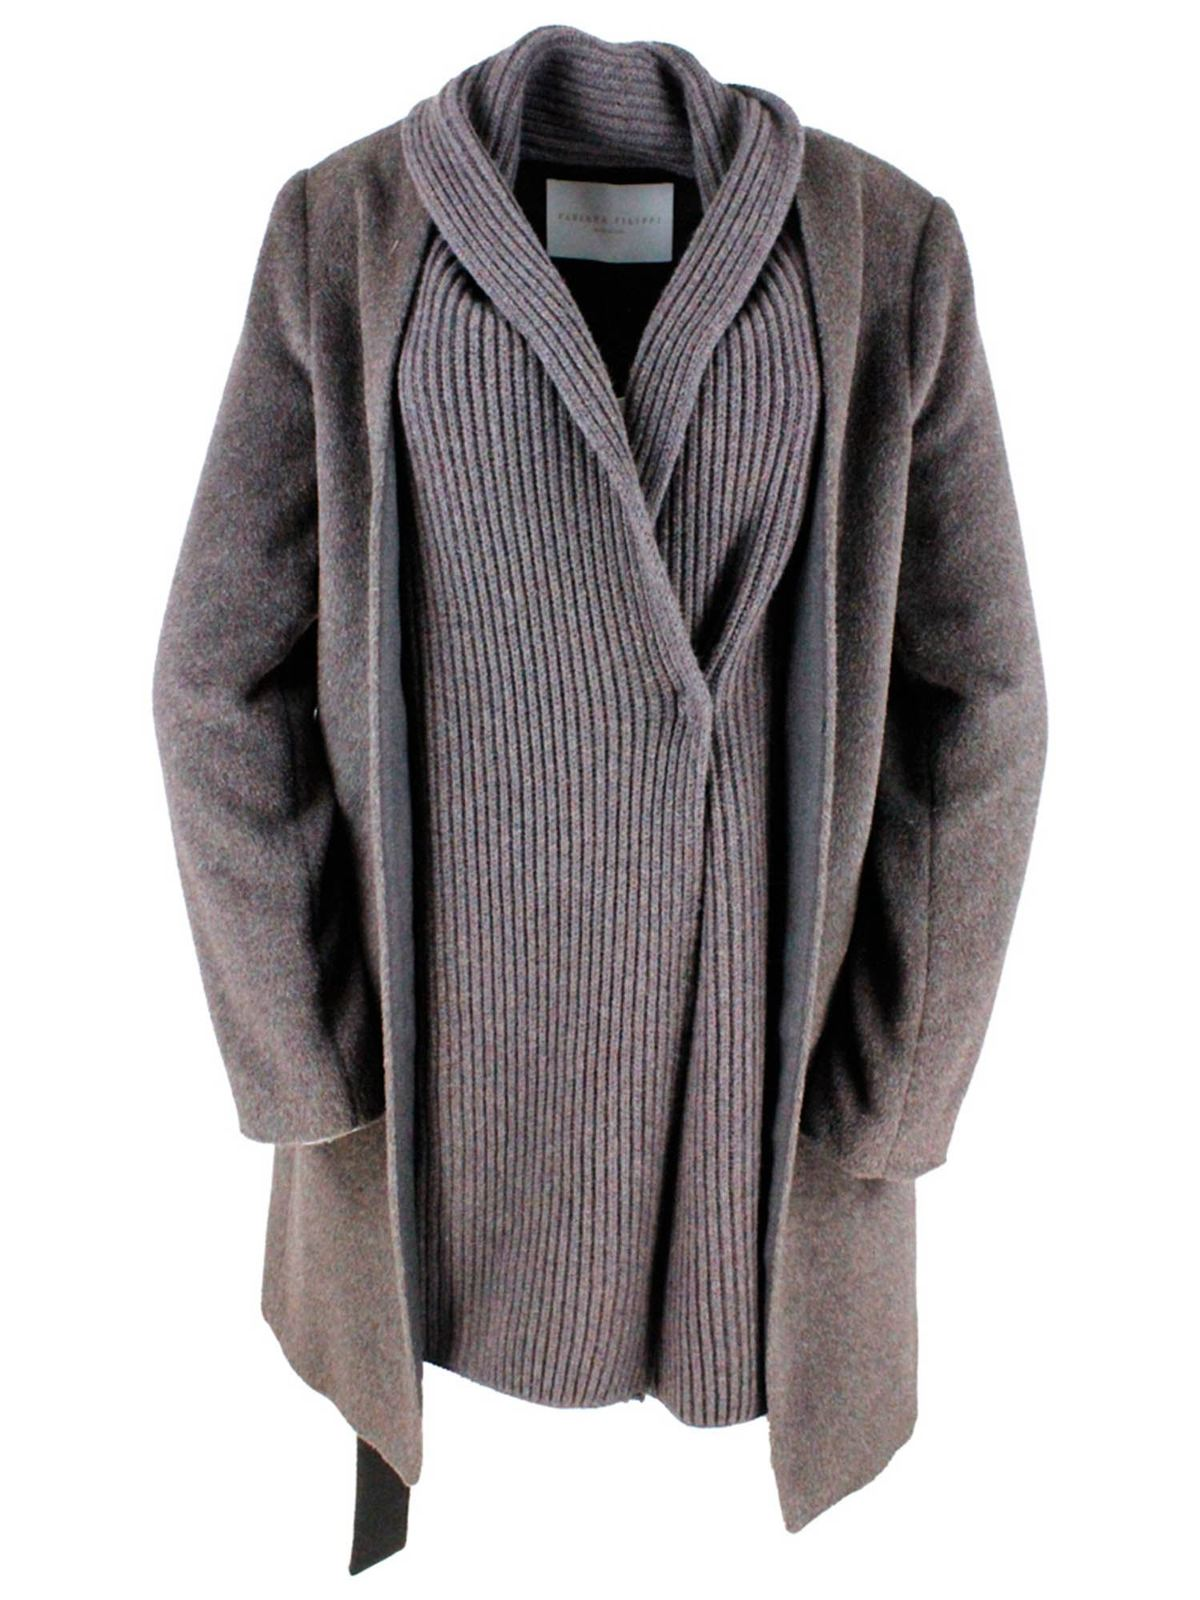 Fabiana Filippi KNITTED FINISH COAT IN AGATE BROWN COLOR